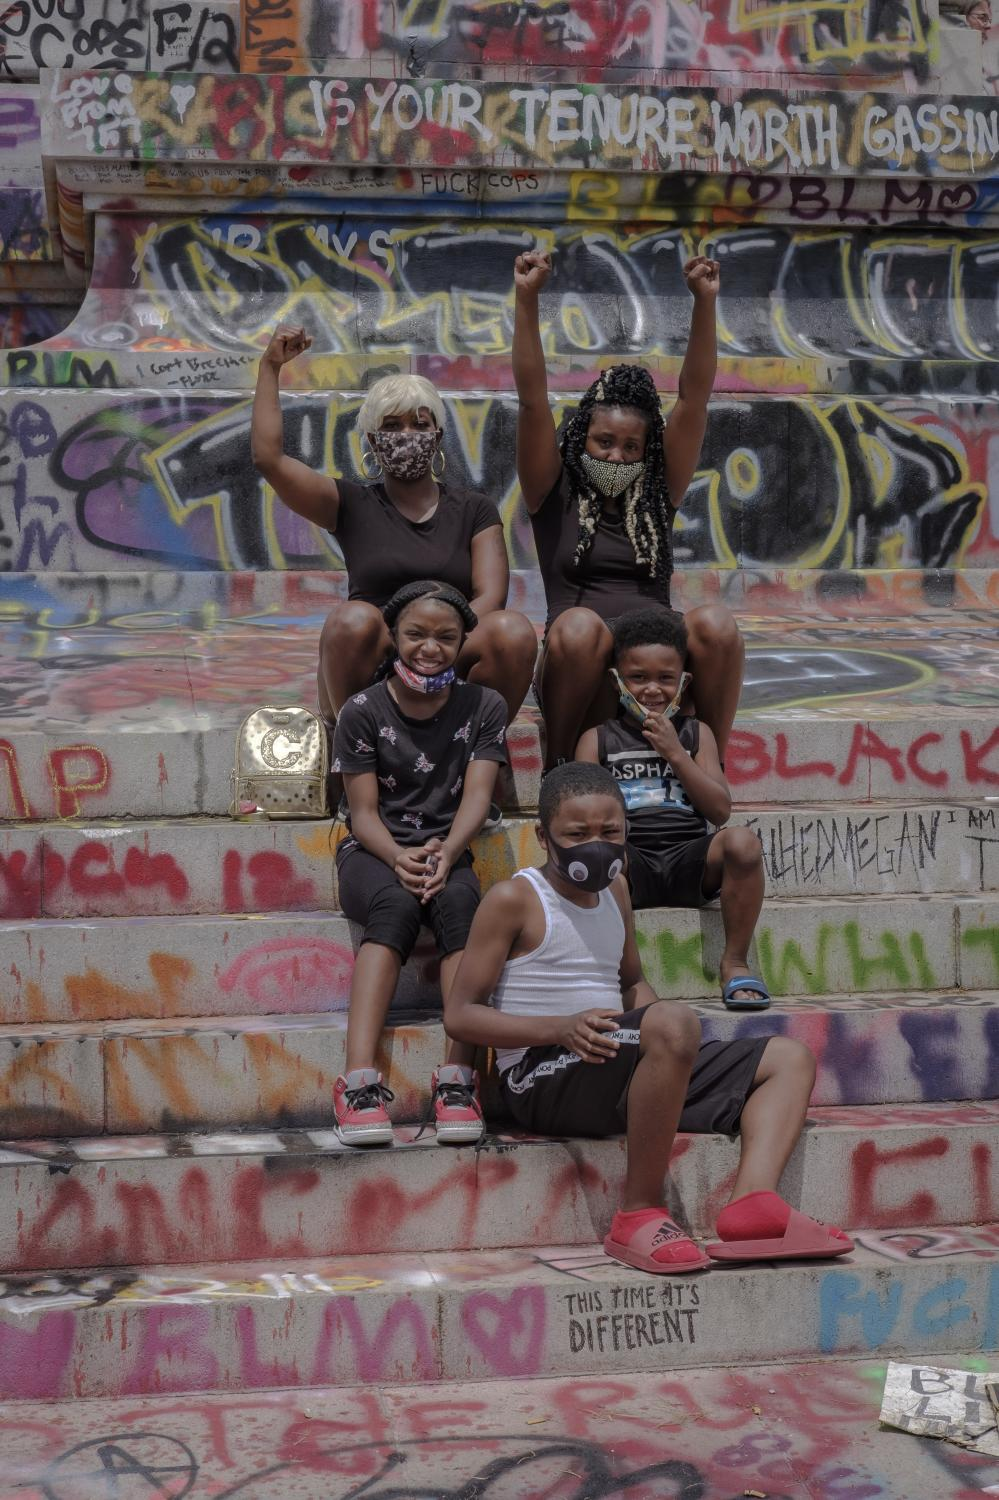 """RICHMOND, VA - June 20, 2020: Kimberly Coward, her sister Danielle Coward and their kids pose for a portrait at the Robert E. Lee Monument on June 21, 2020. To celebrate the """"Juneteenth,"""" Richmond residents gather at Monument Avenue to honor those who have been killed by police officers and to protest police brutality. The monument has been claimed by the community and has become a healing space where parents take photos with their children, play basketball and share a meal on the now proclaimed """"Marcus-David Petters Circle"""". The Robert E. Lee memorial has been renamed in honor of the young Marcus-David Petters, who was shot and killed by a Richmond police officer on May 14, 2018. Photo: Carlos Bernate for The New York Times."""